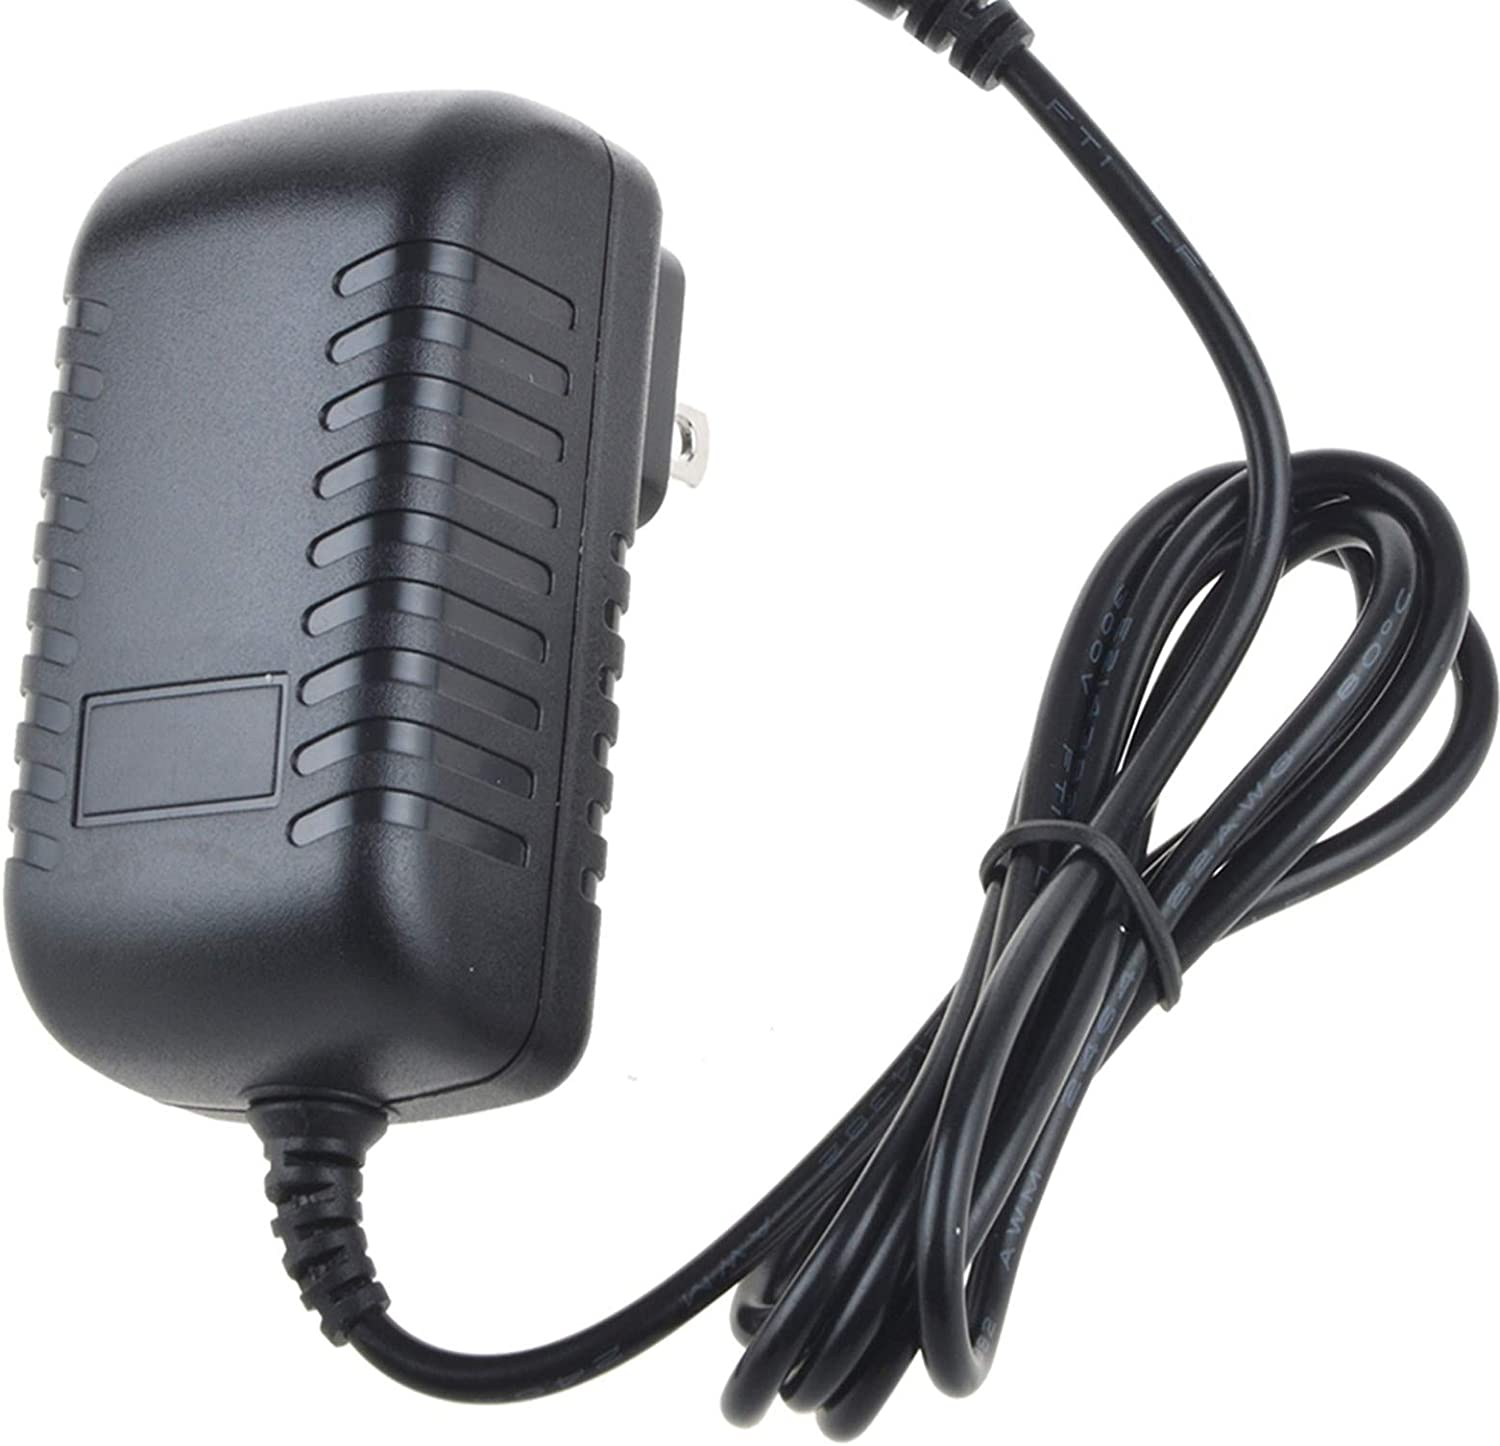 Accessory USA AC Adapter for Mojo Decoys HW1014 6-Volt Battery Charger 2481-0009 816740001142